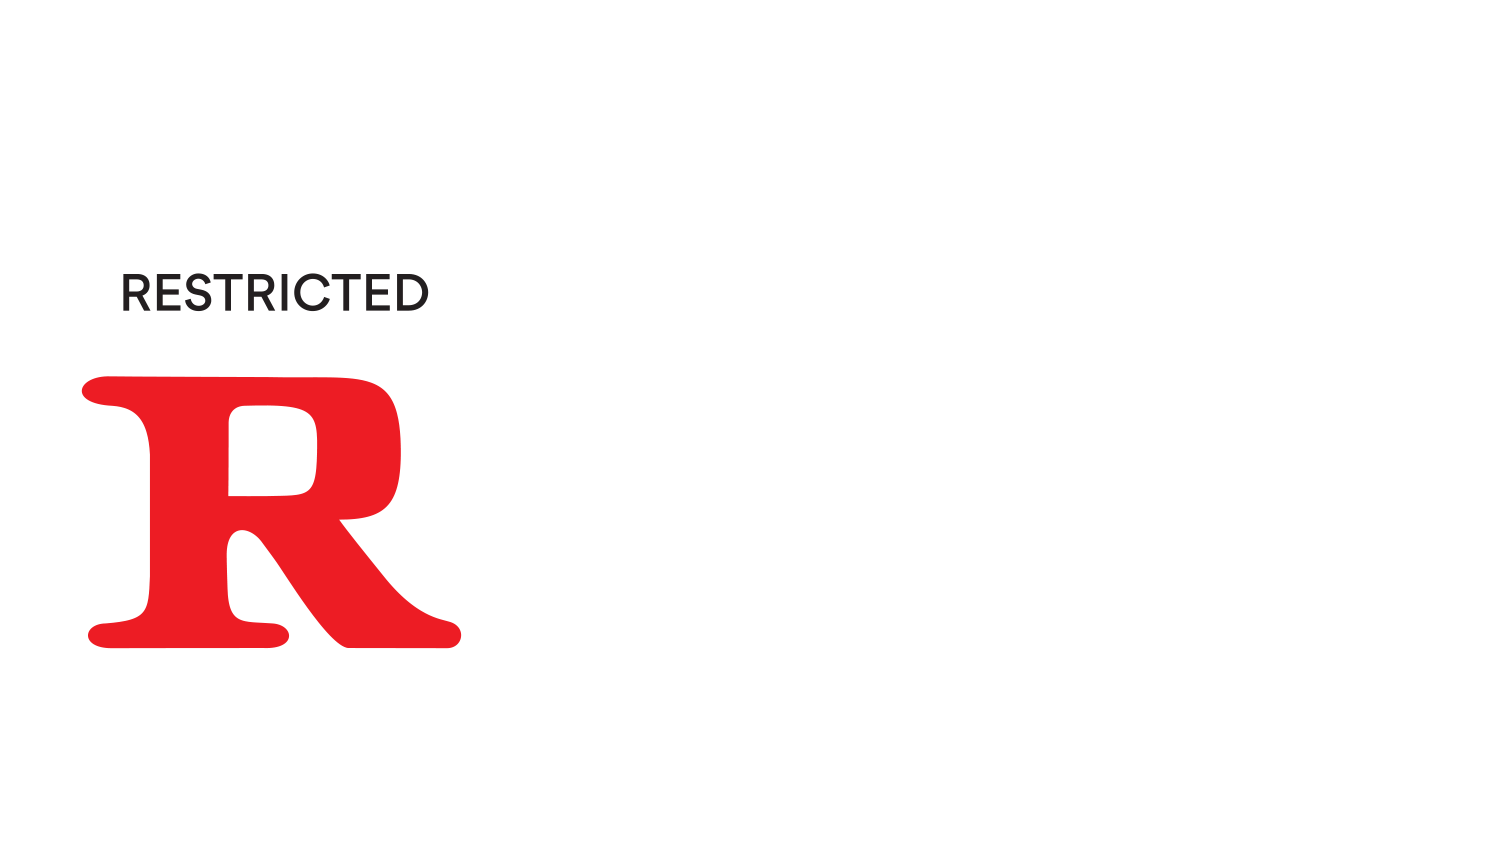 R rating logo png. Ratings information